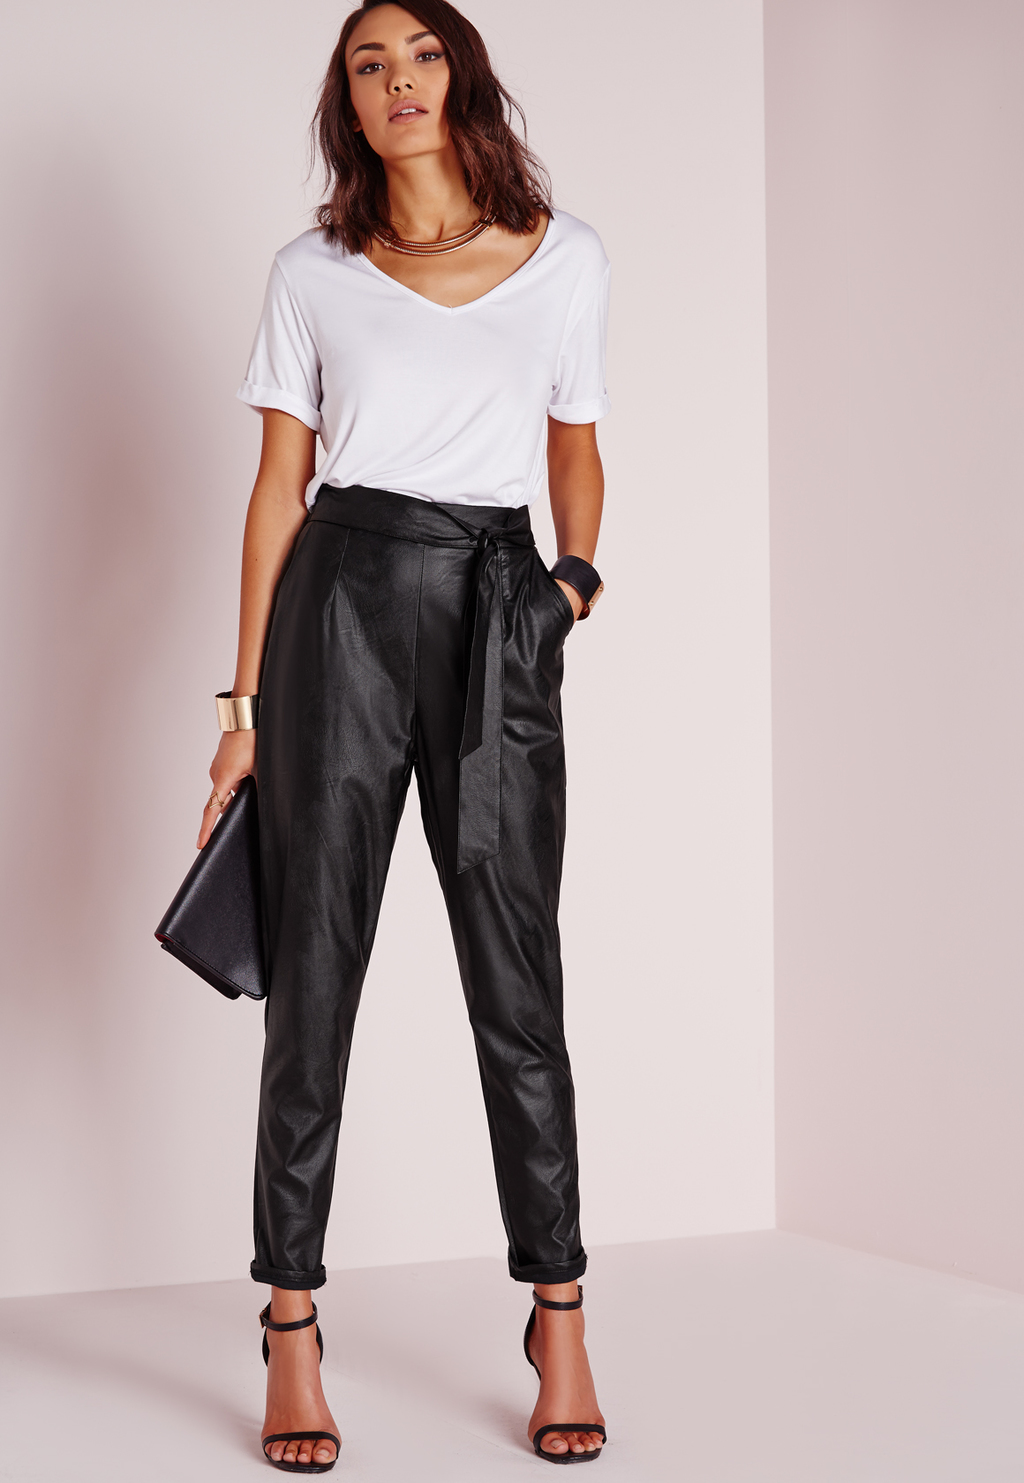 Tie Waist Faux Leather Pegged Leg Trousers Black, Black - length: standard; pattern: plain; style: peg leg; hip detail: front pockets at hip; waist: high rise; pocket detail: pockets at the sides; predominant colour: black; fibres: polyester/polyamide - 100%; texture group: leather; fit: tapered; pattern type: fabric; occasions: creative work; season: a/w 2015; wardrobe: highlight